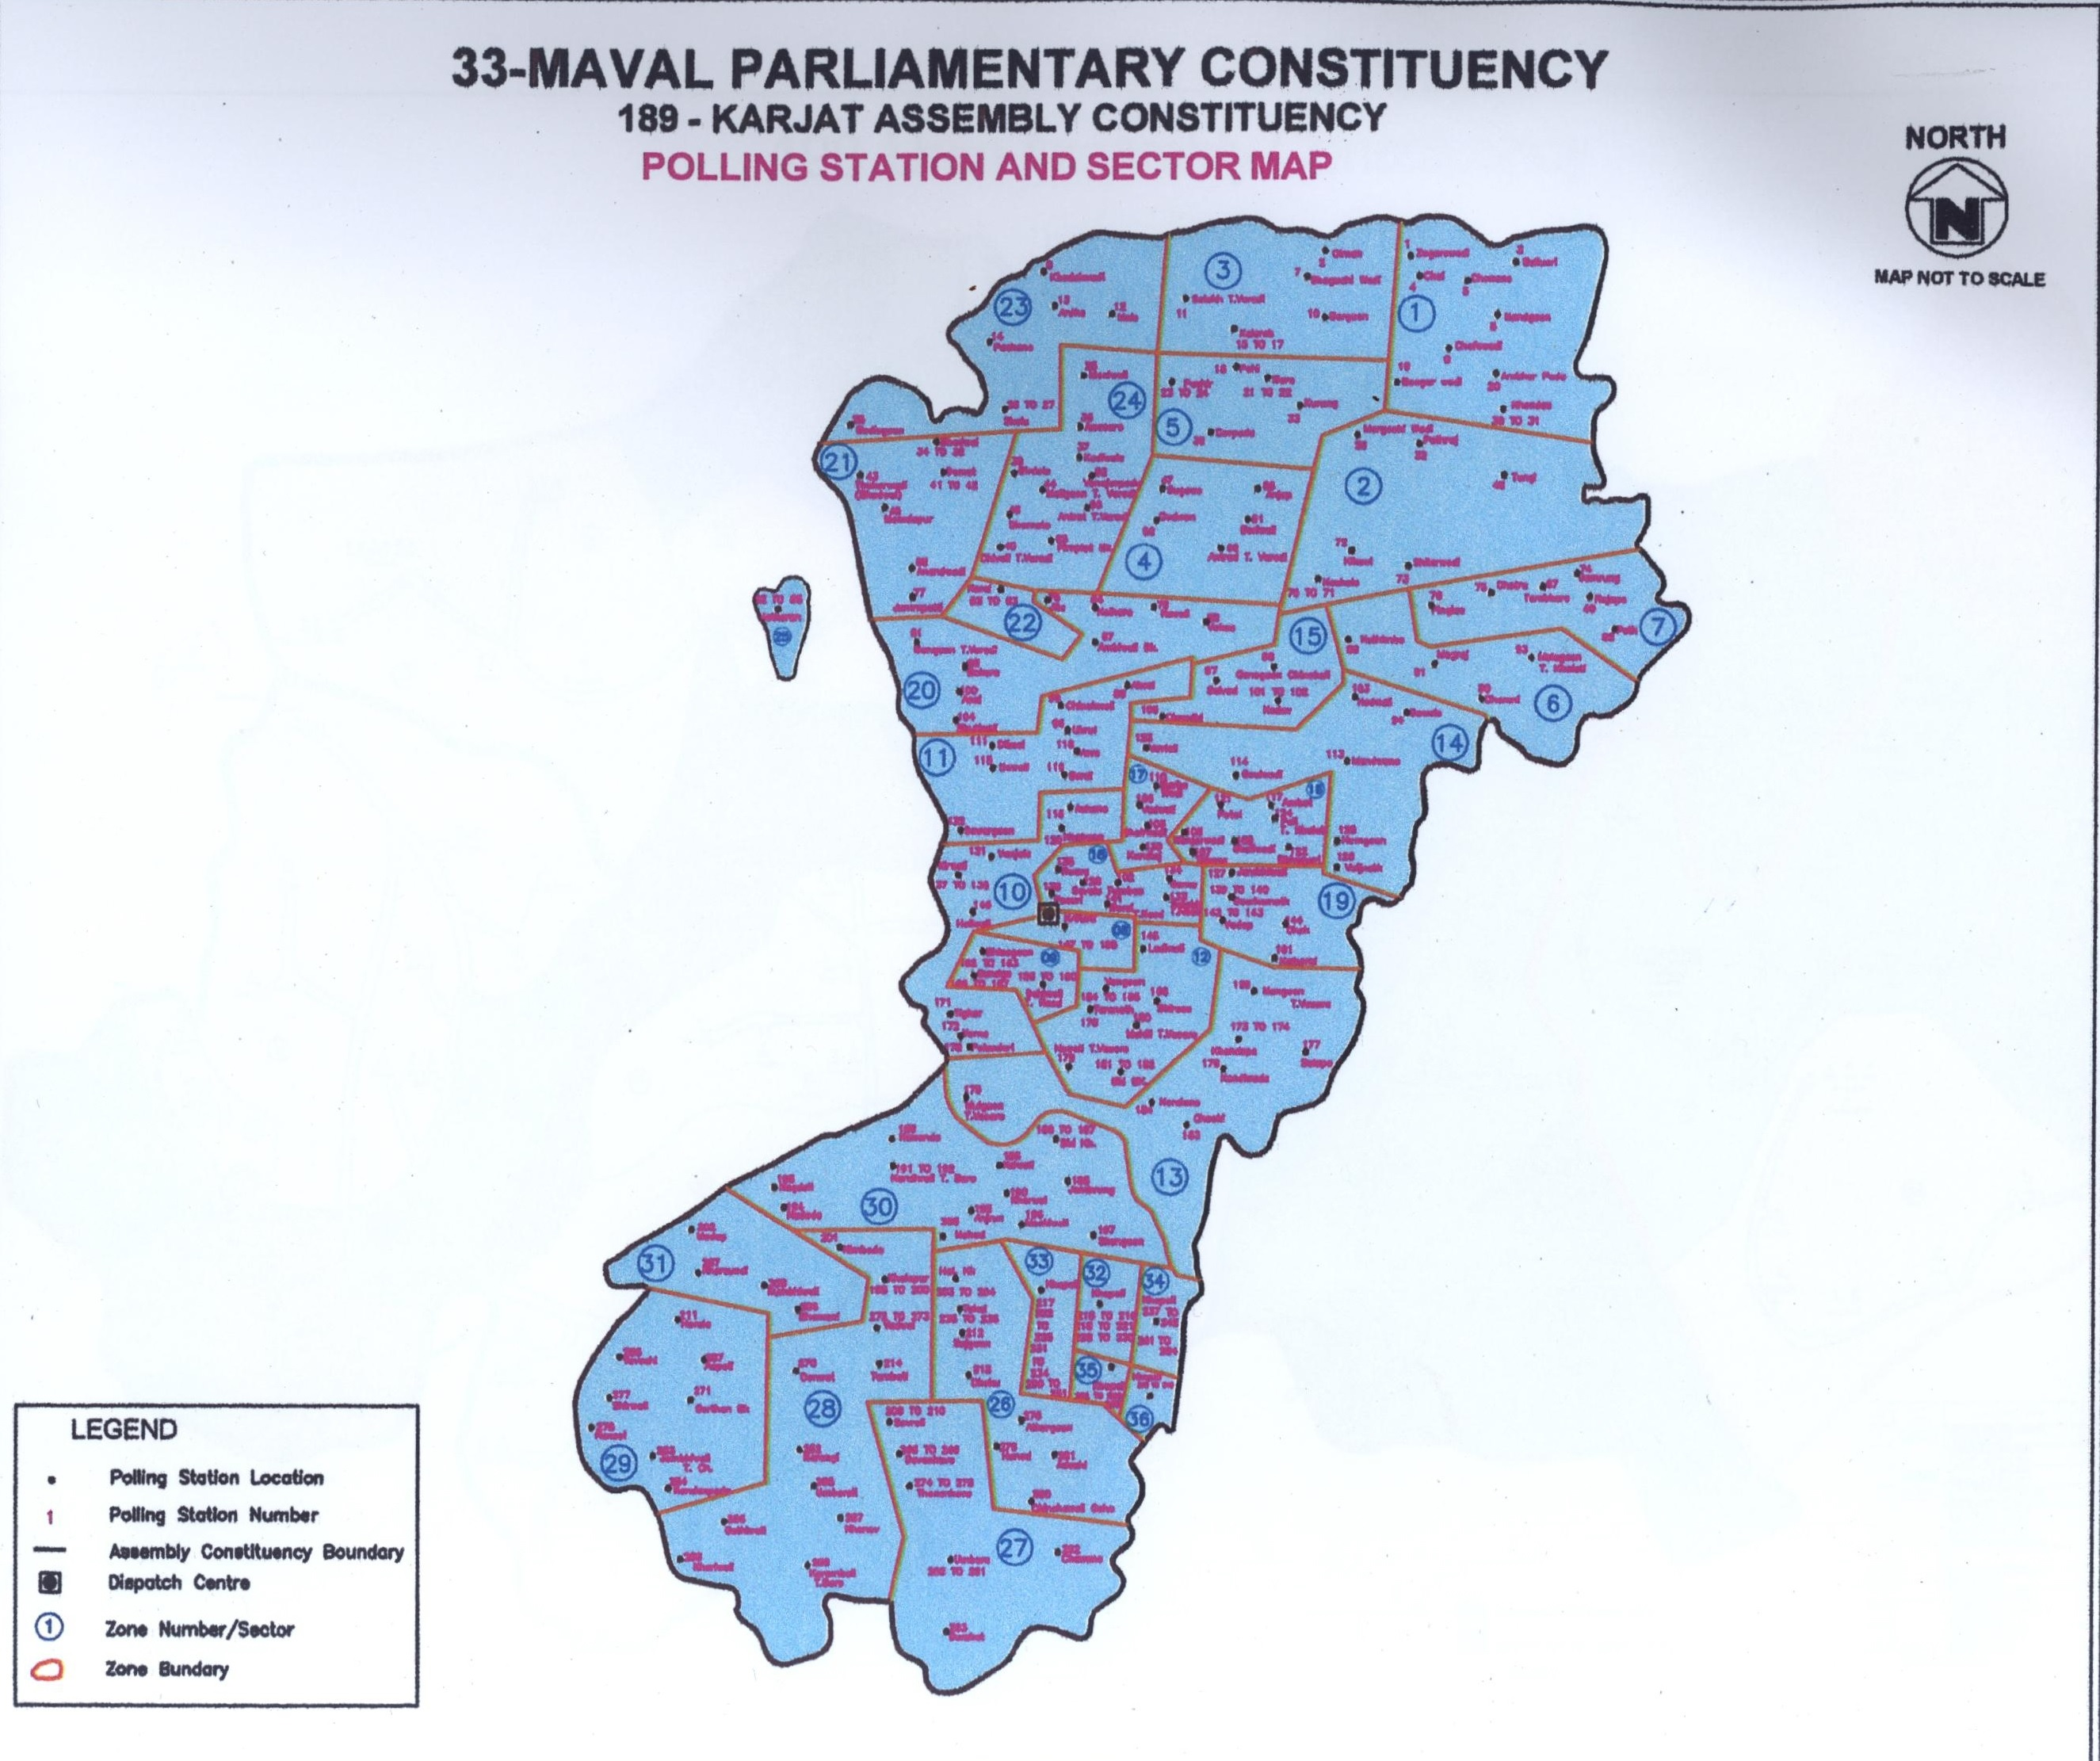 Map of Maval Parliamentary Constituency